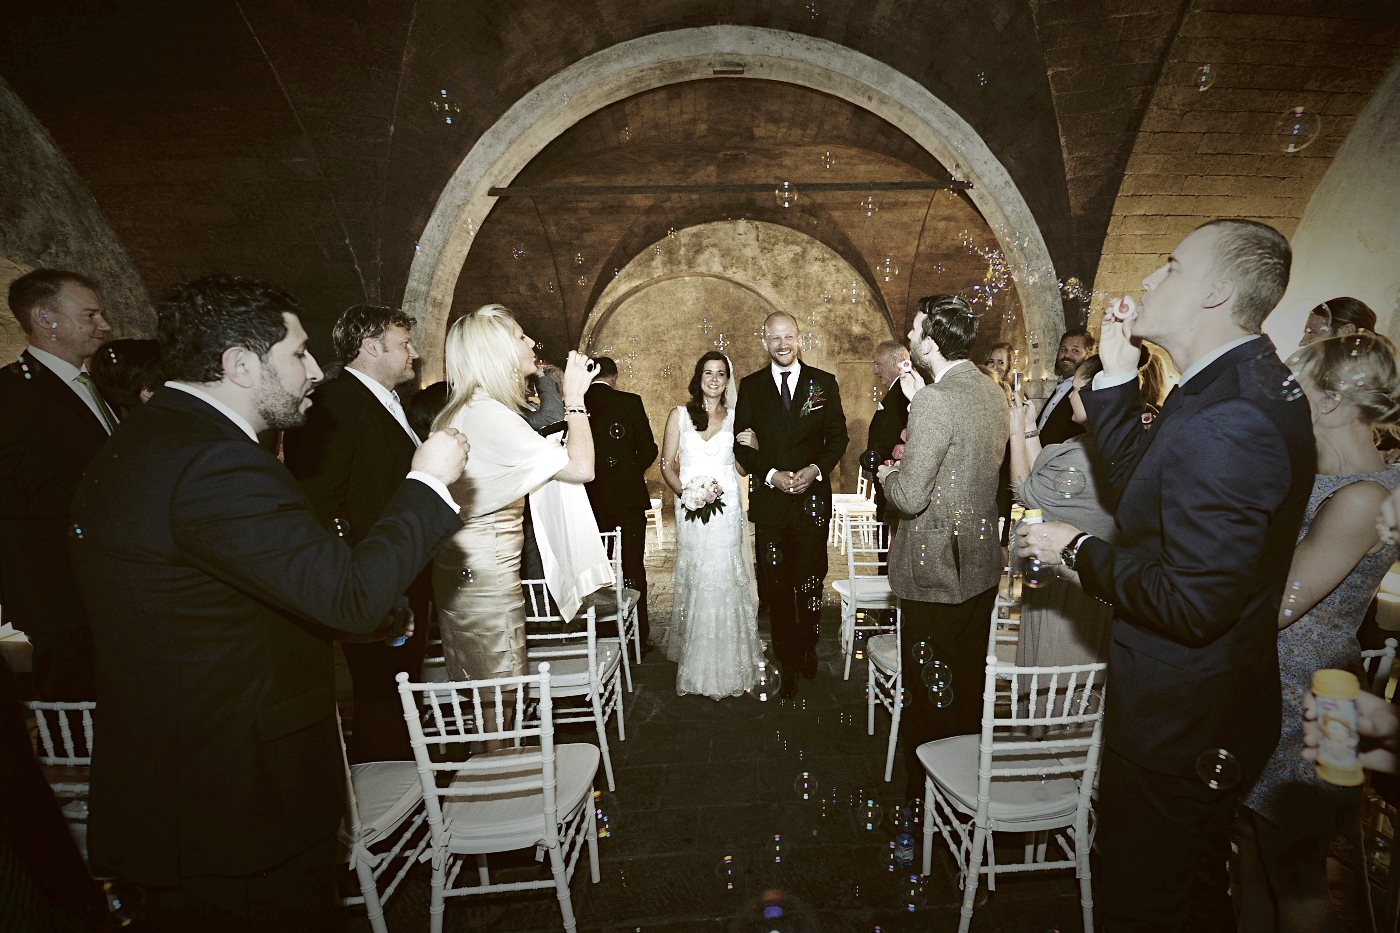 wedding photo siena_10.jpg